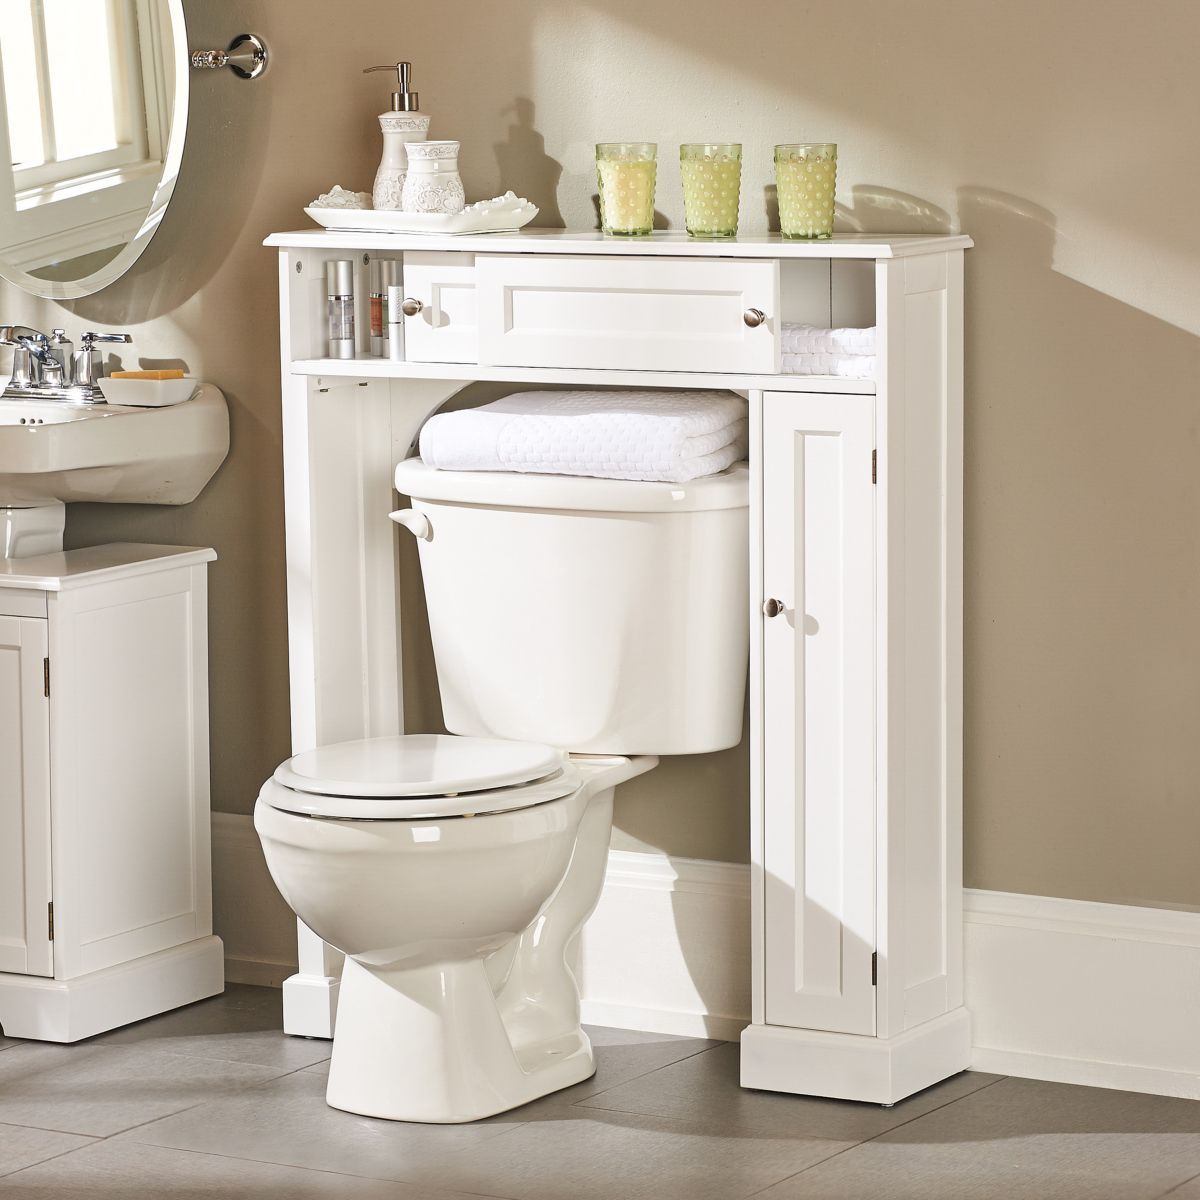 Weatherby Bathroom Over-the-Toilet Storage Cabinet | house stuff ...